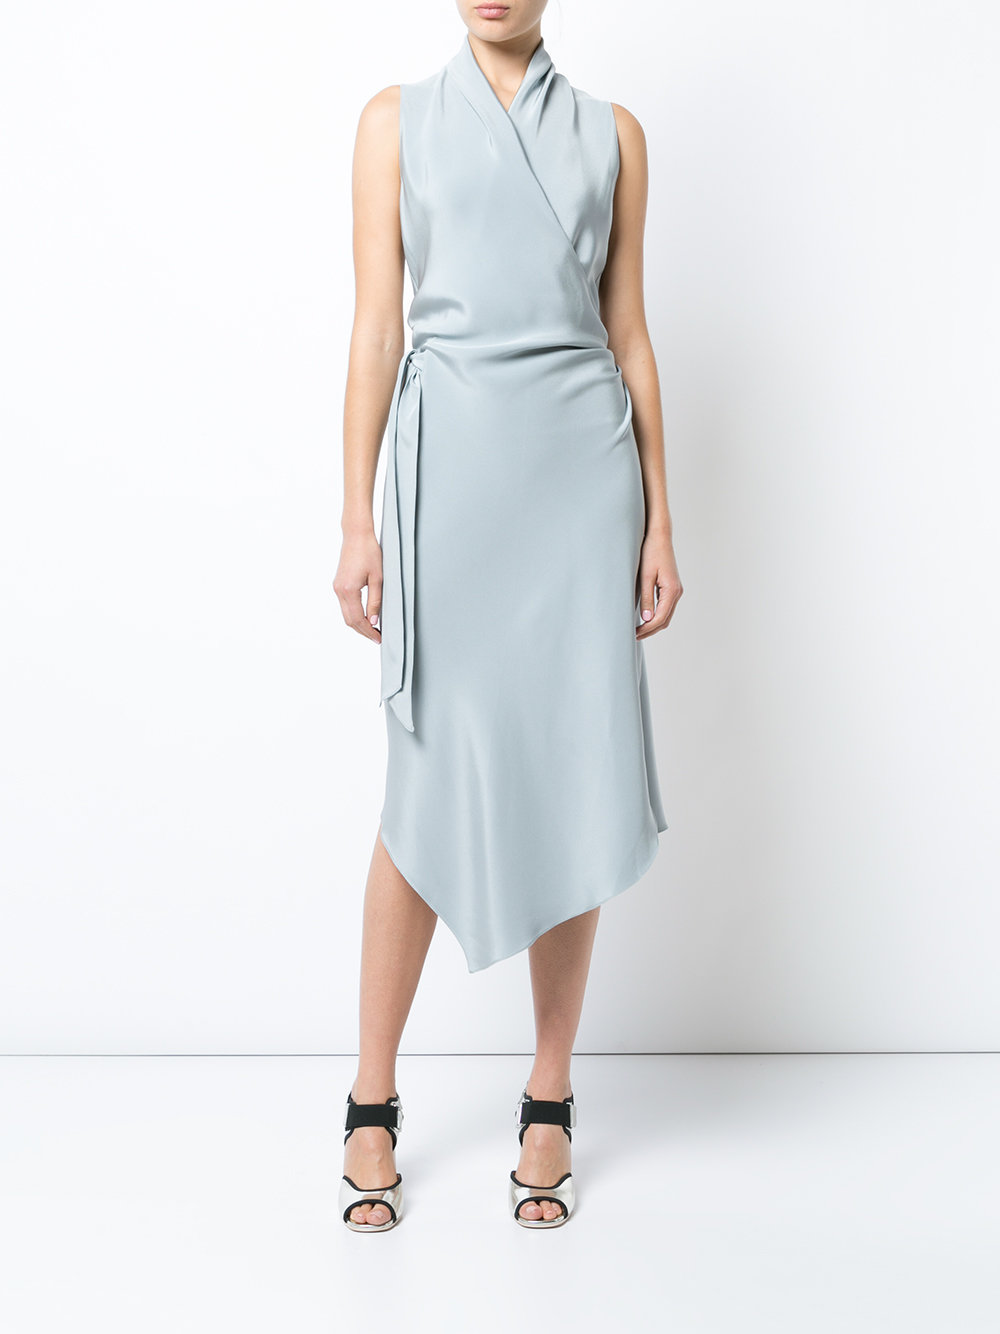 PETER COHEN Victor dress, 92 106 ₽